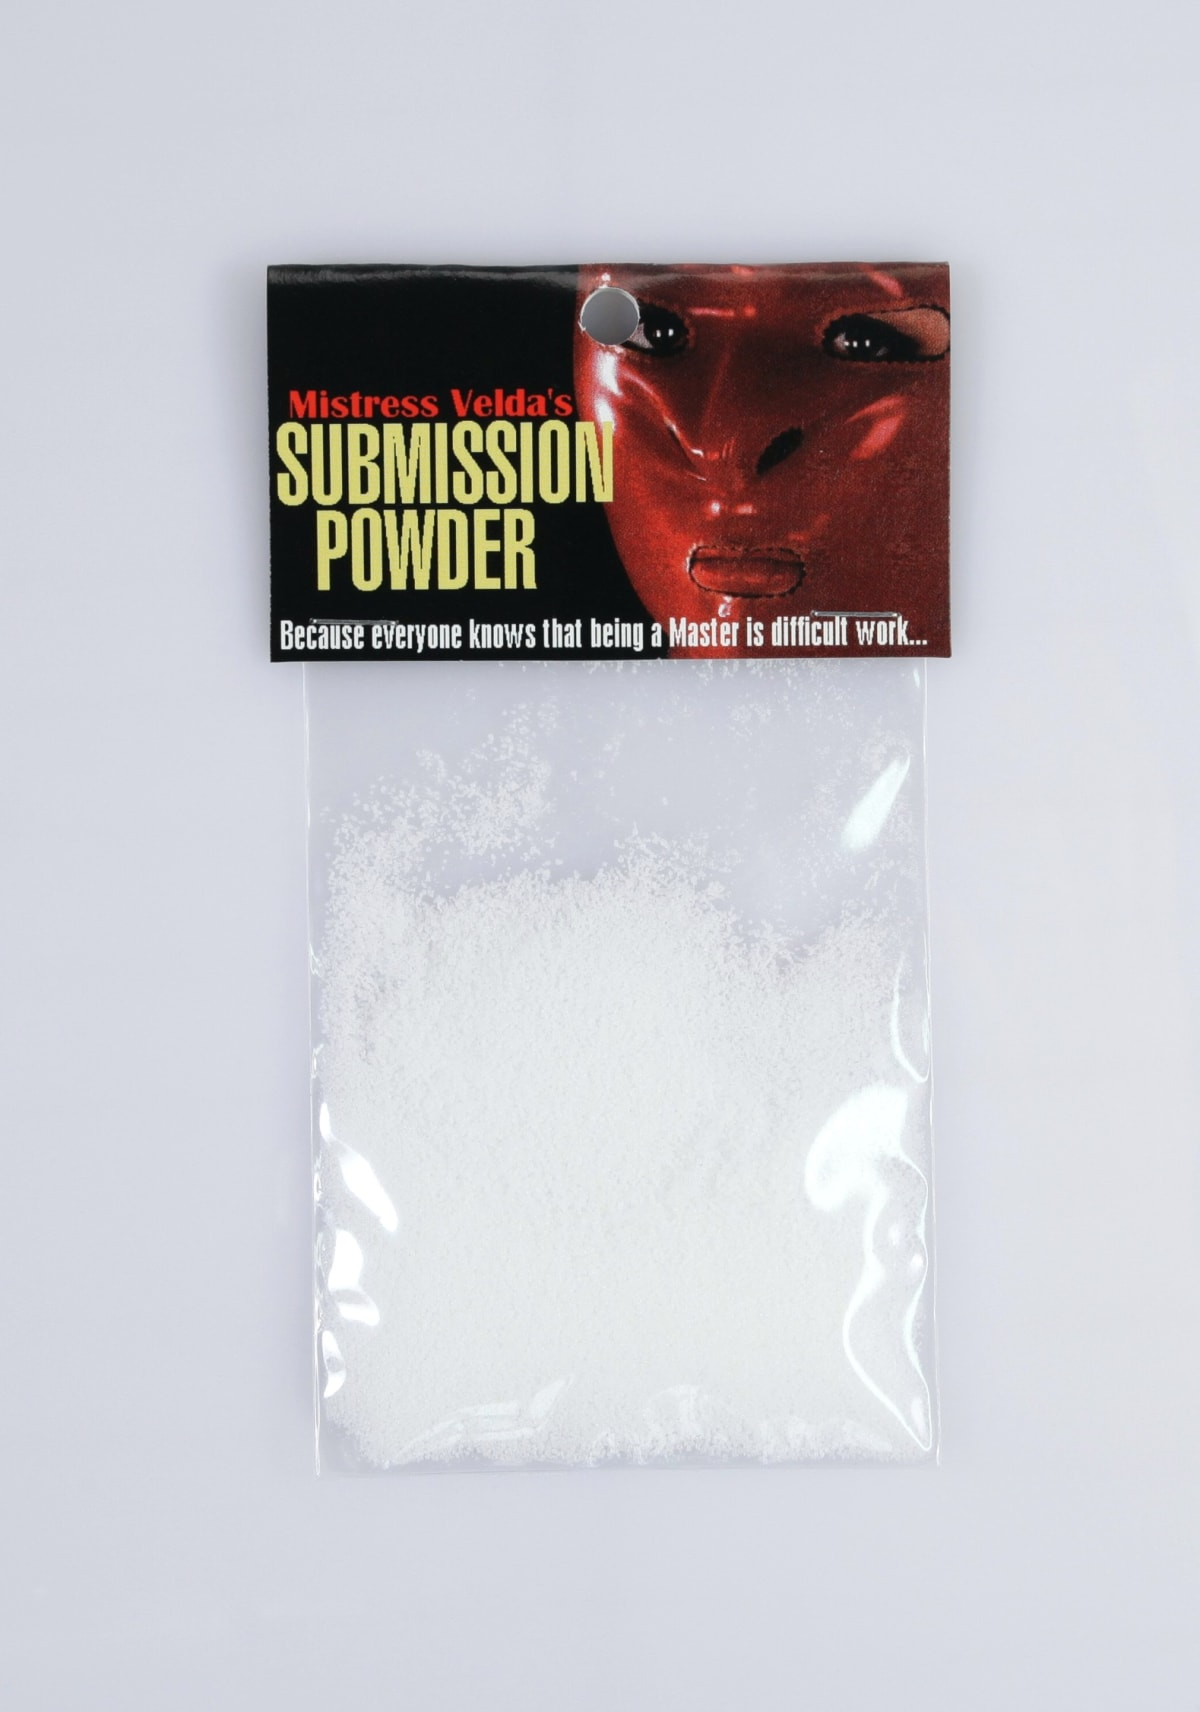 Submission powder